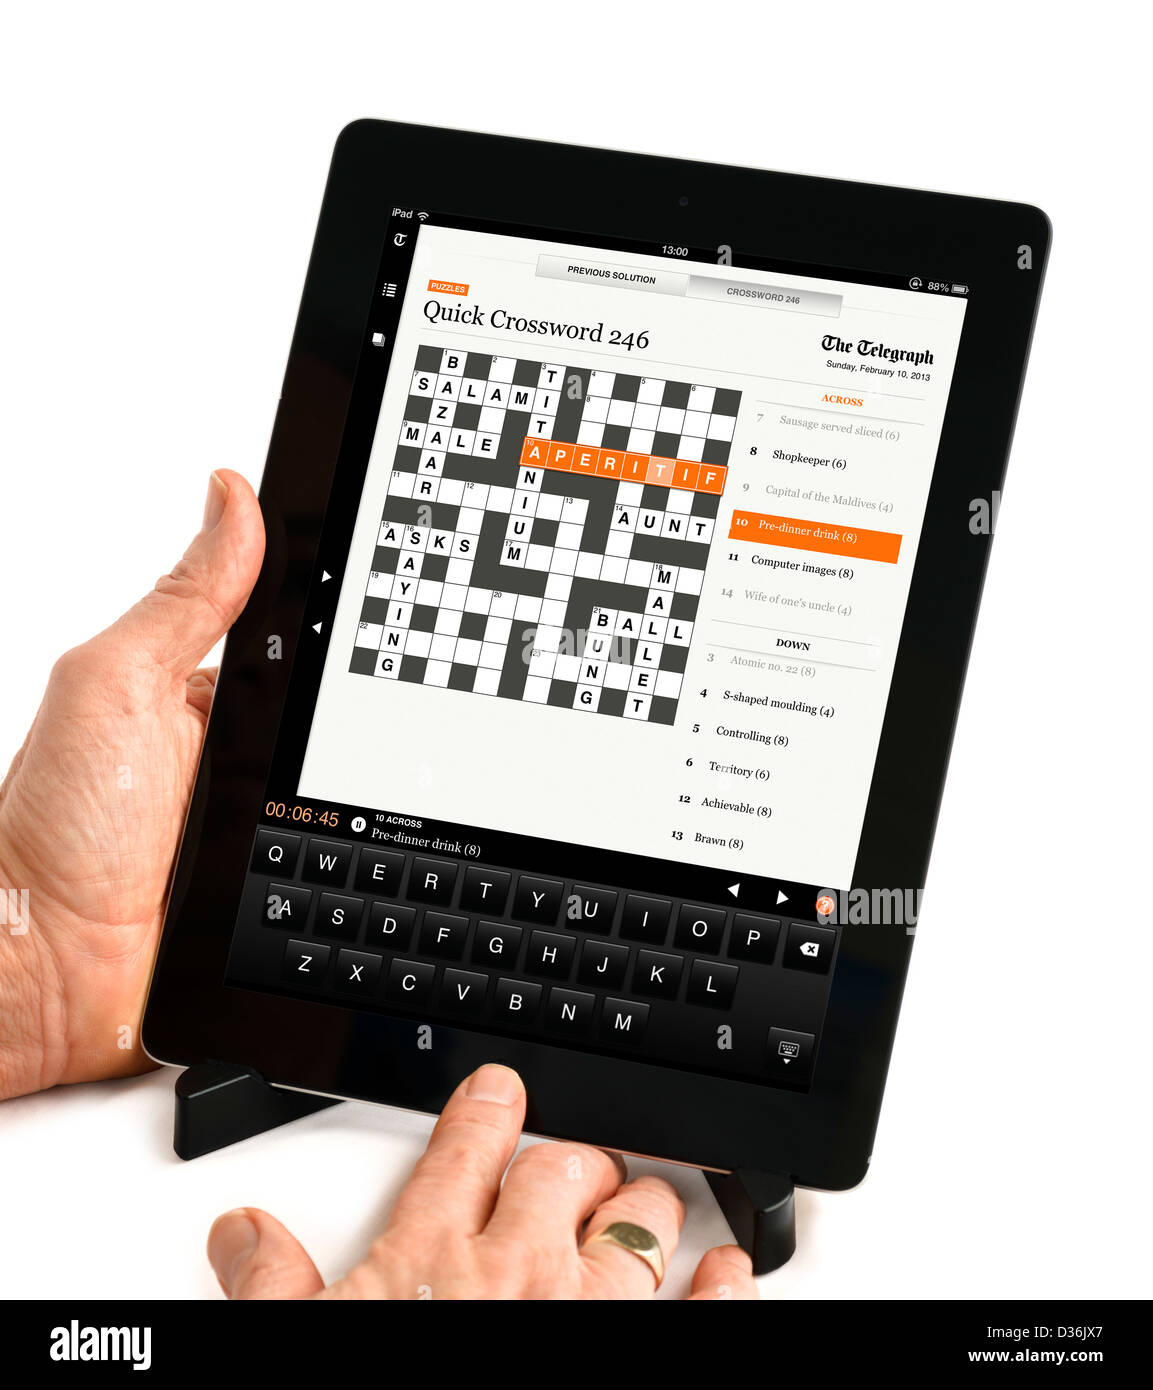 Doint the crossword on the Telegraph app on an Apple iPad 4th genration retina display tablet computer  sc 1 st  Alamy & Doint the crossword on the Telegraph app on an Apple iPad 4th ... 25forcollege.com